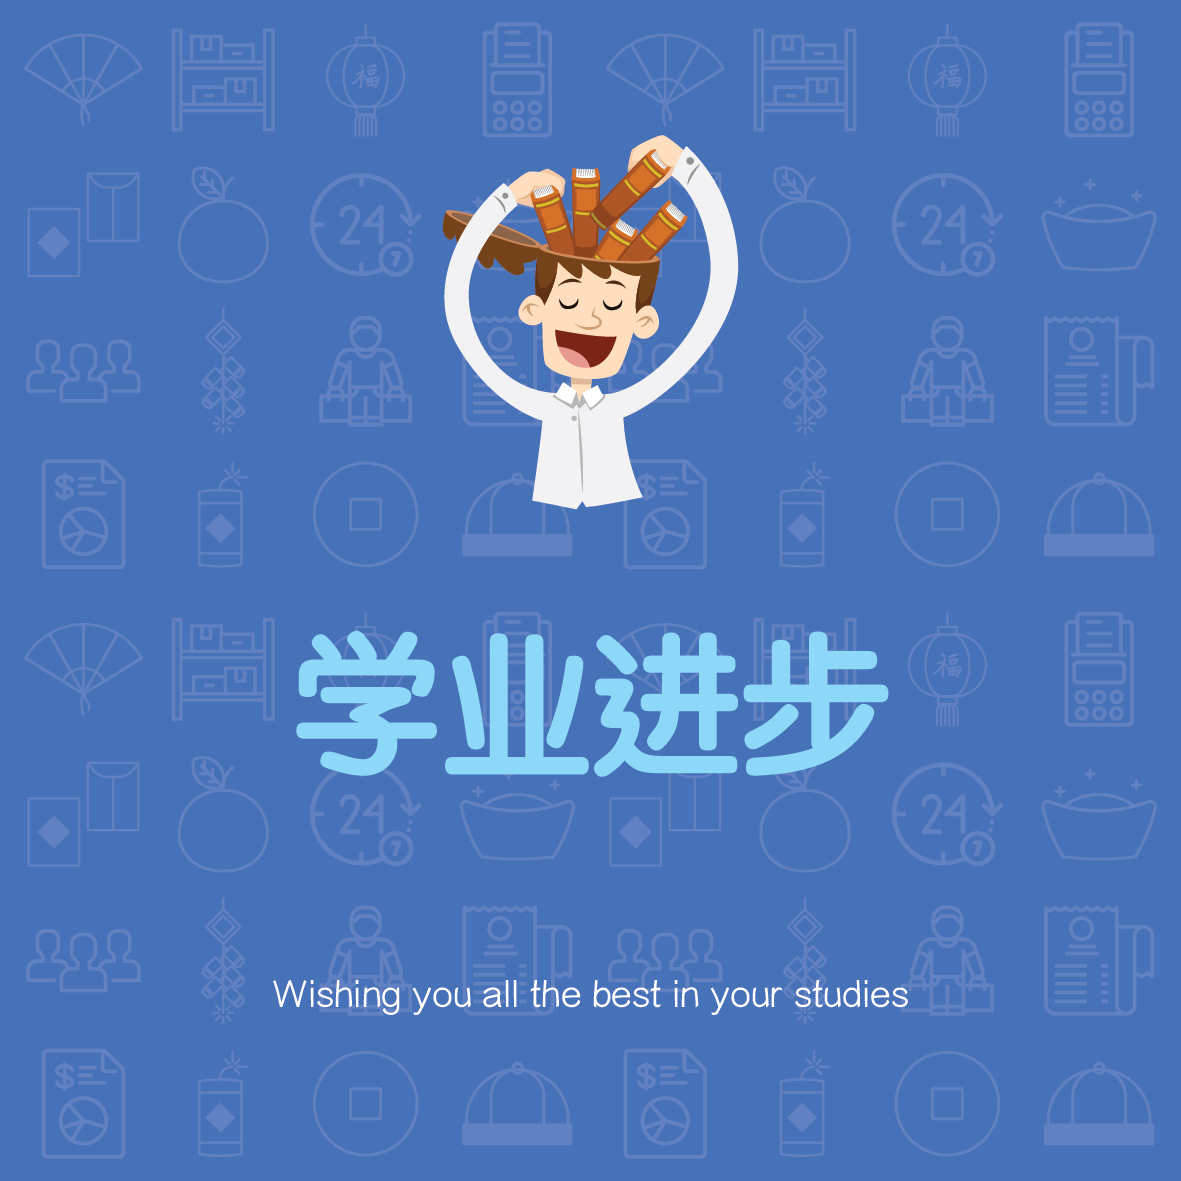 学业进步 2018 - All the best in your studies